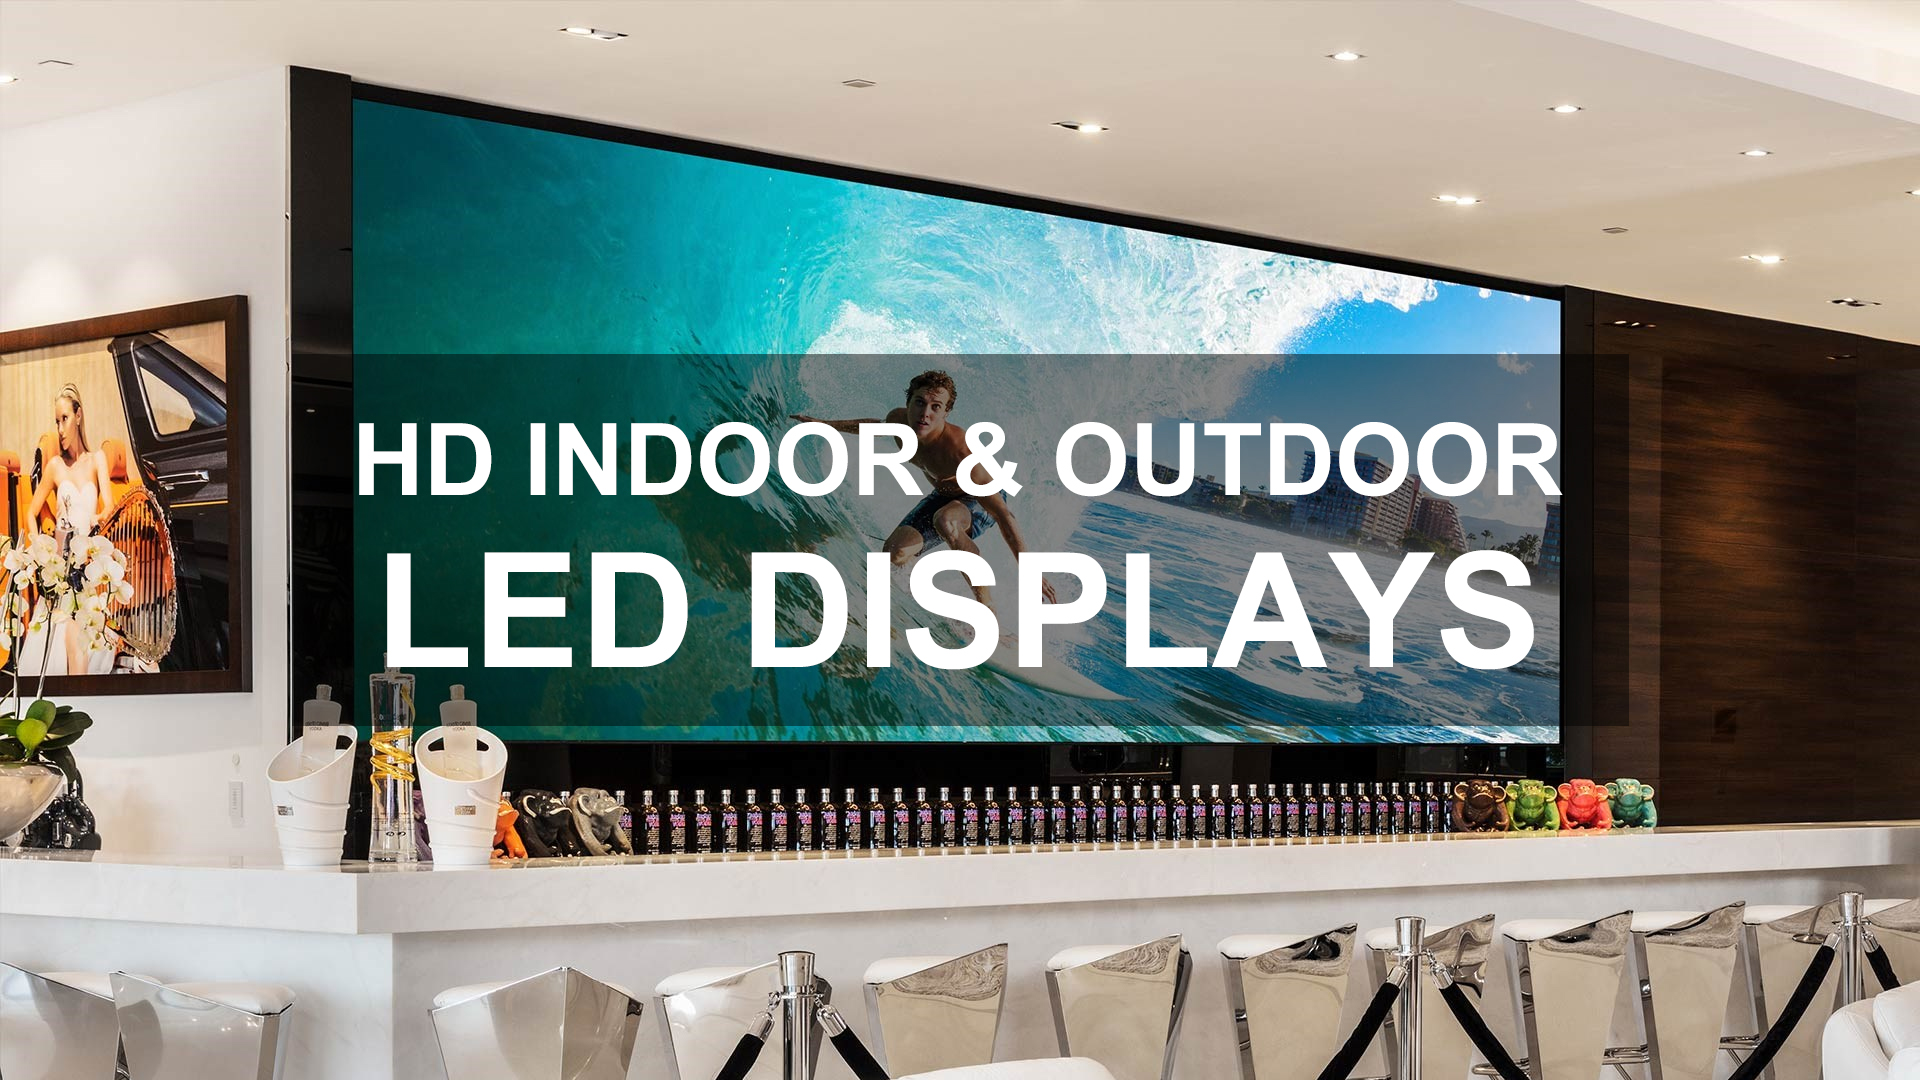 HD Indoor & Outdoor LED Displays